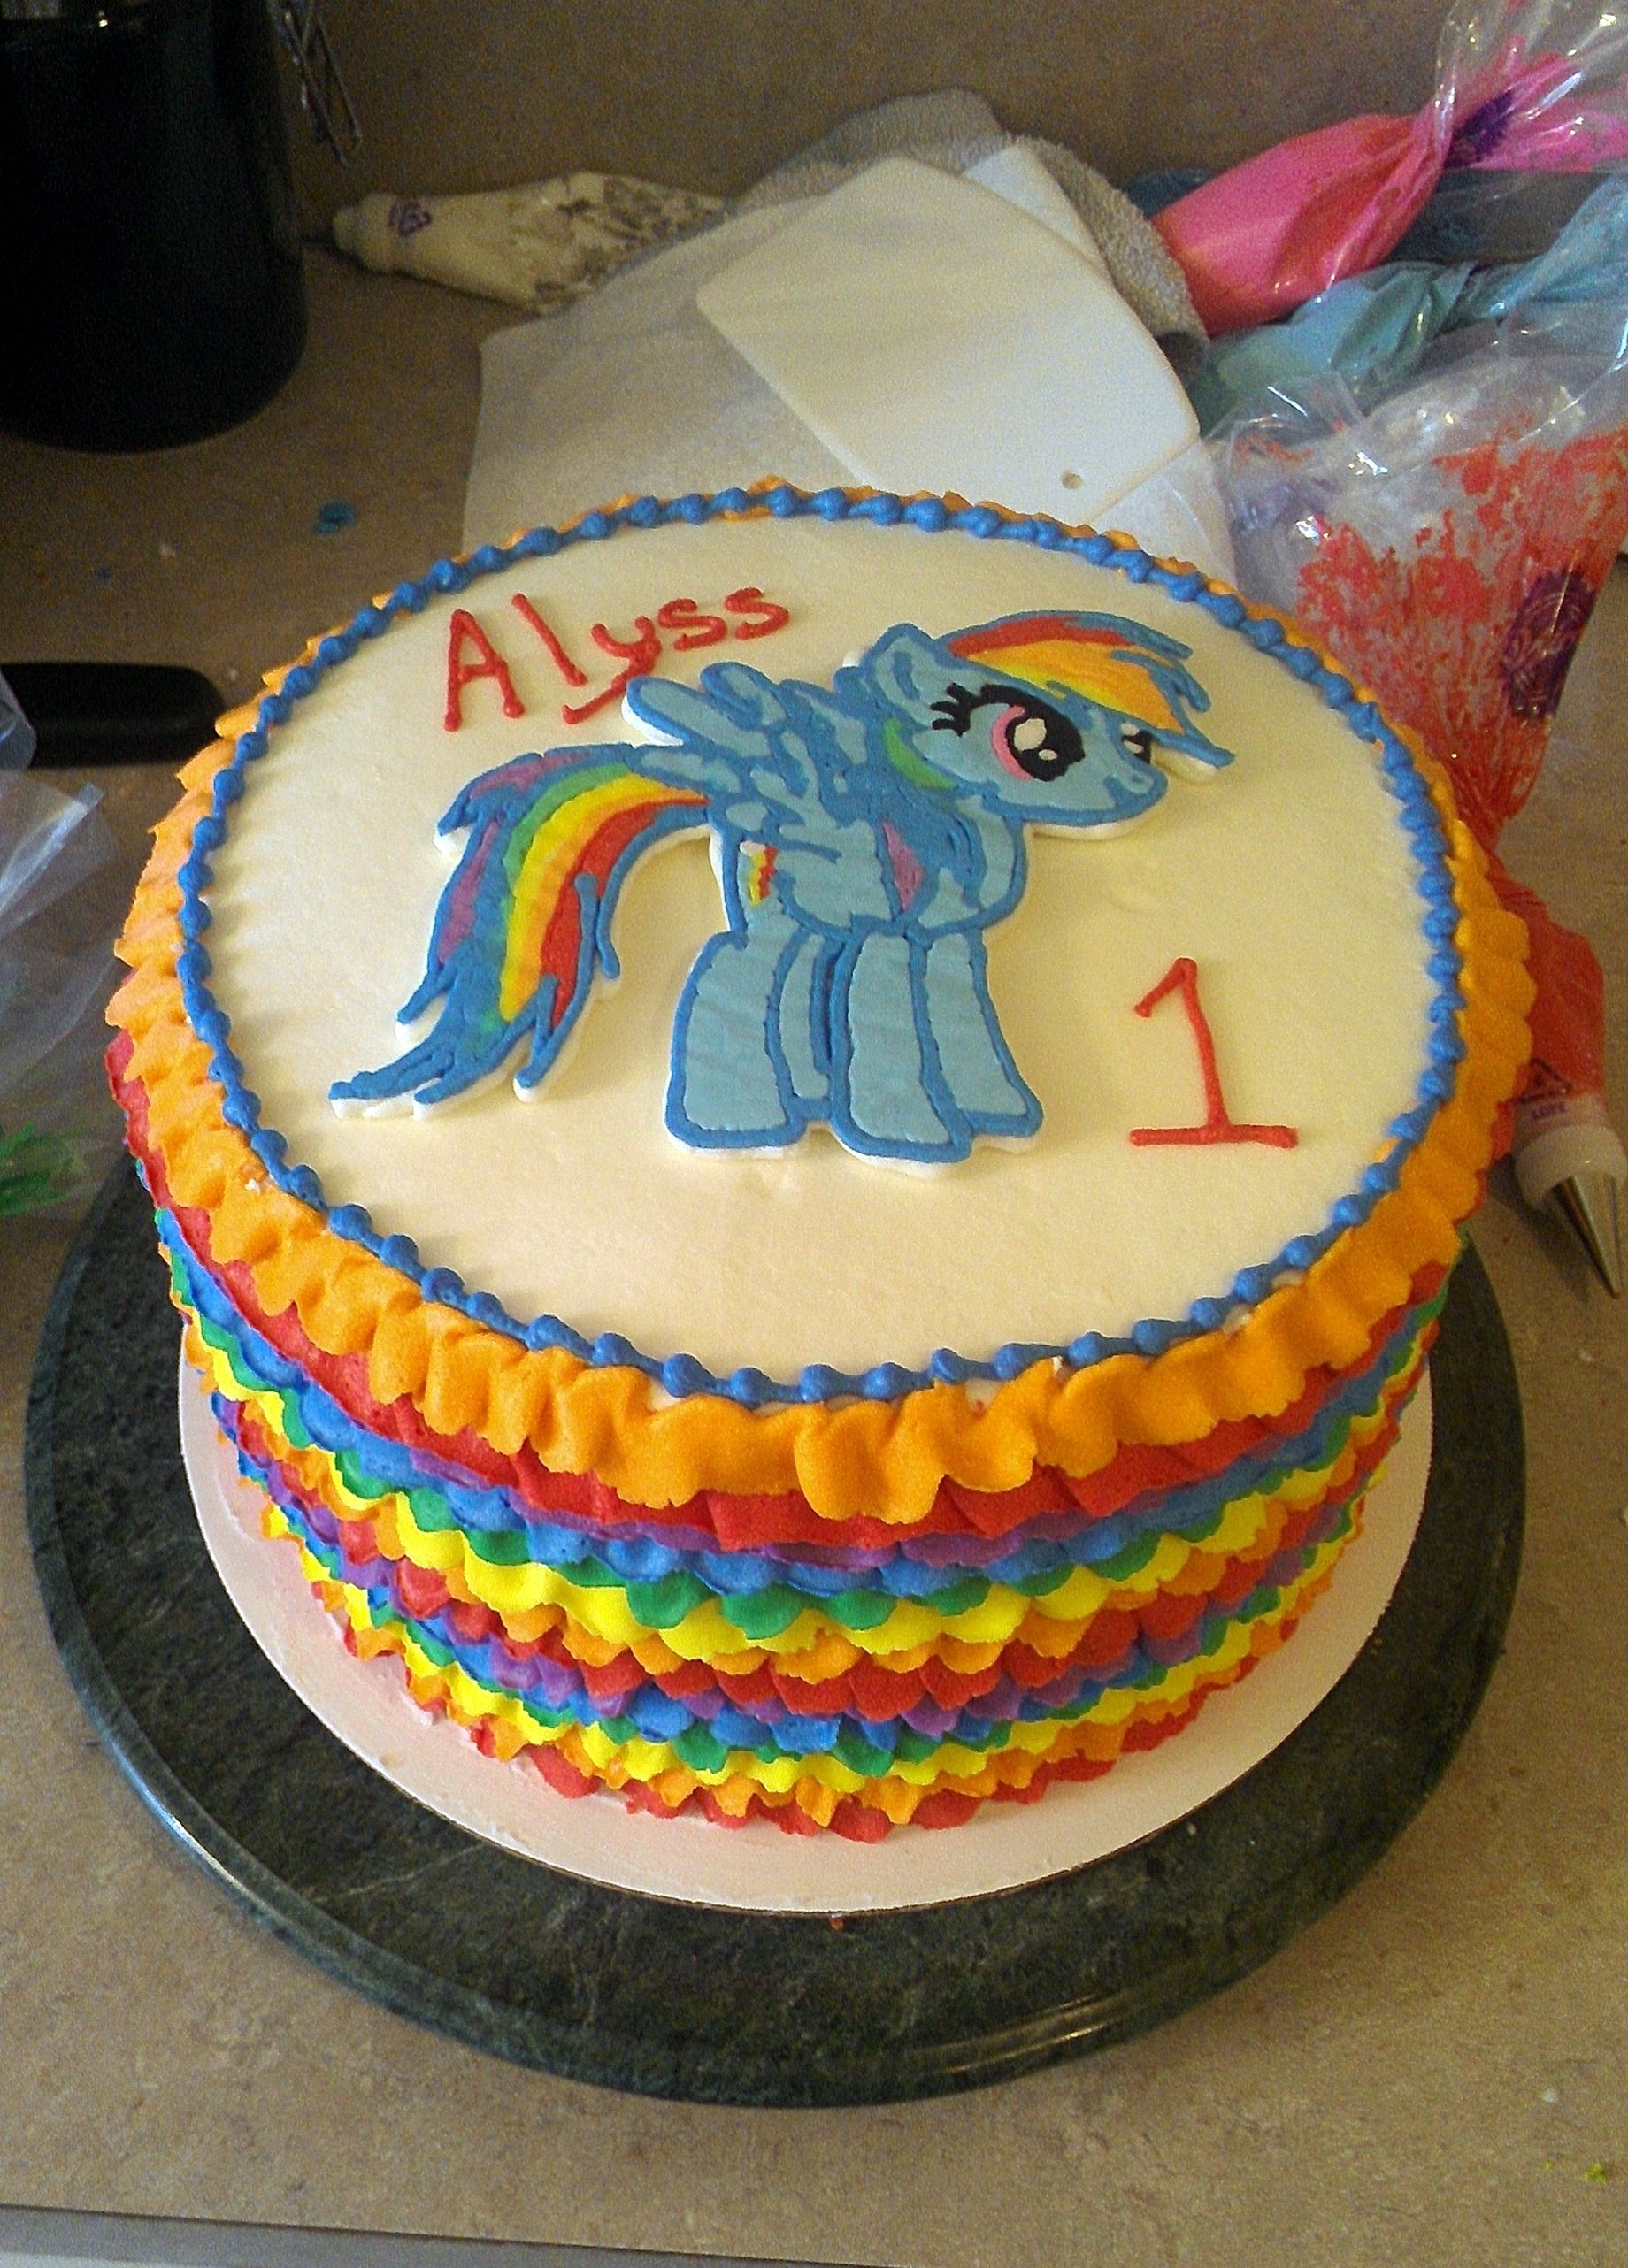 Yeeeaaaahh Rainbow Dash. This was a frozen buttercream transfer a.k.a. a lesson in how to have nerves of steel. I was certain her tail was going to snap off before I got it secured on the cake, but alas, it did not. Excuse the mess in the background, this is my real kitchen lol